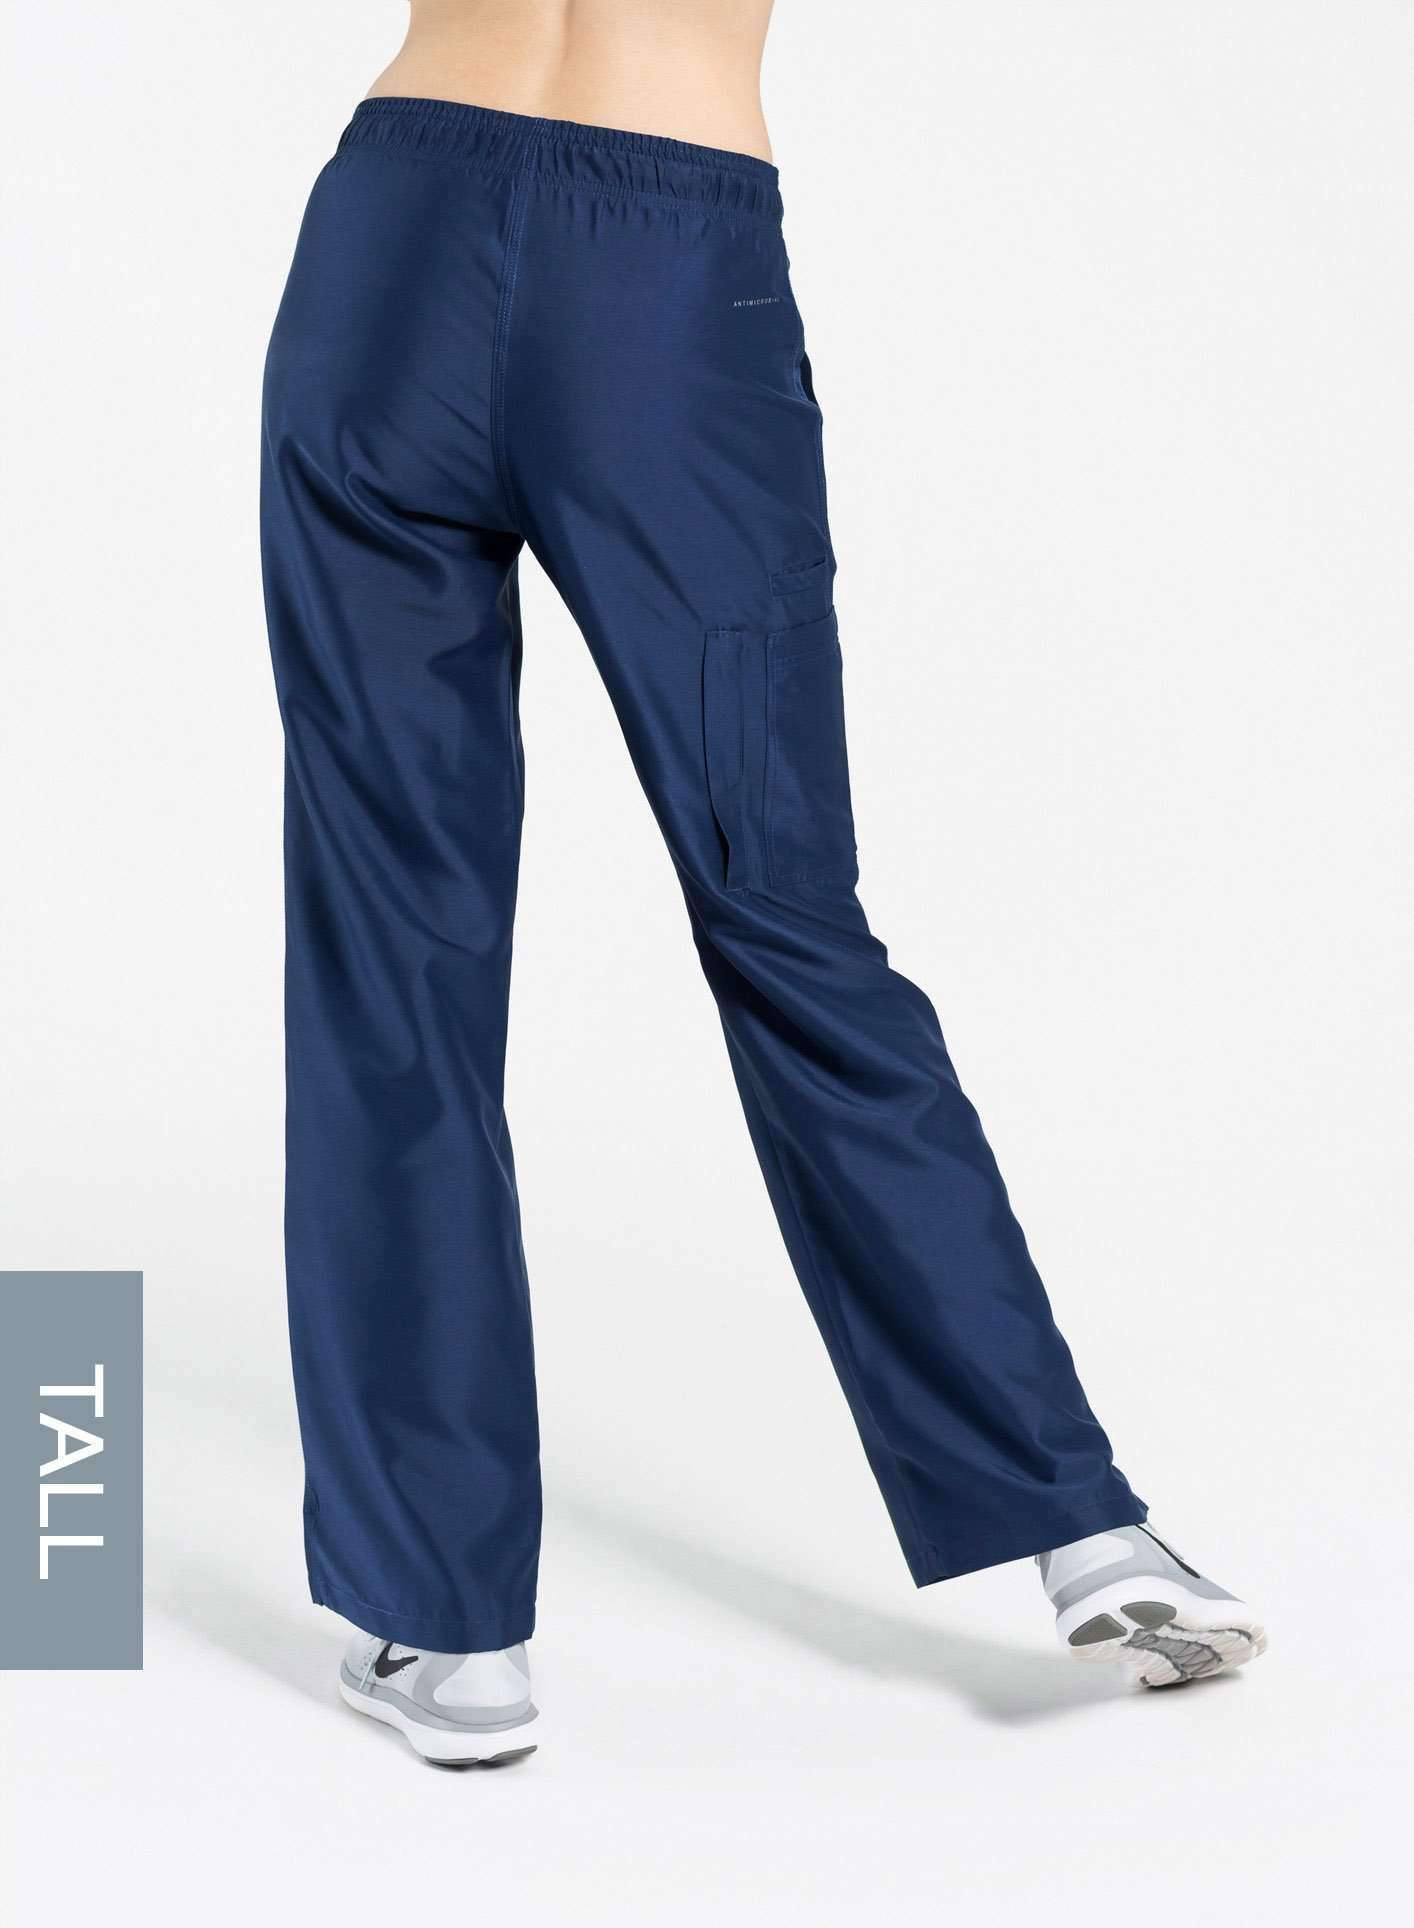 womens tall cargo pocket straight leg scrub pants navy blue Elements back